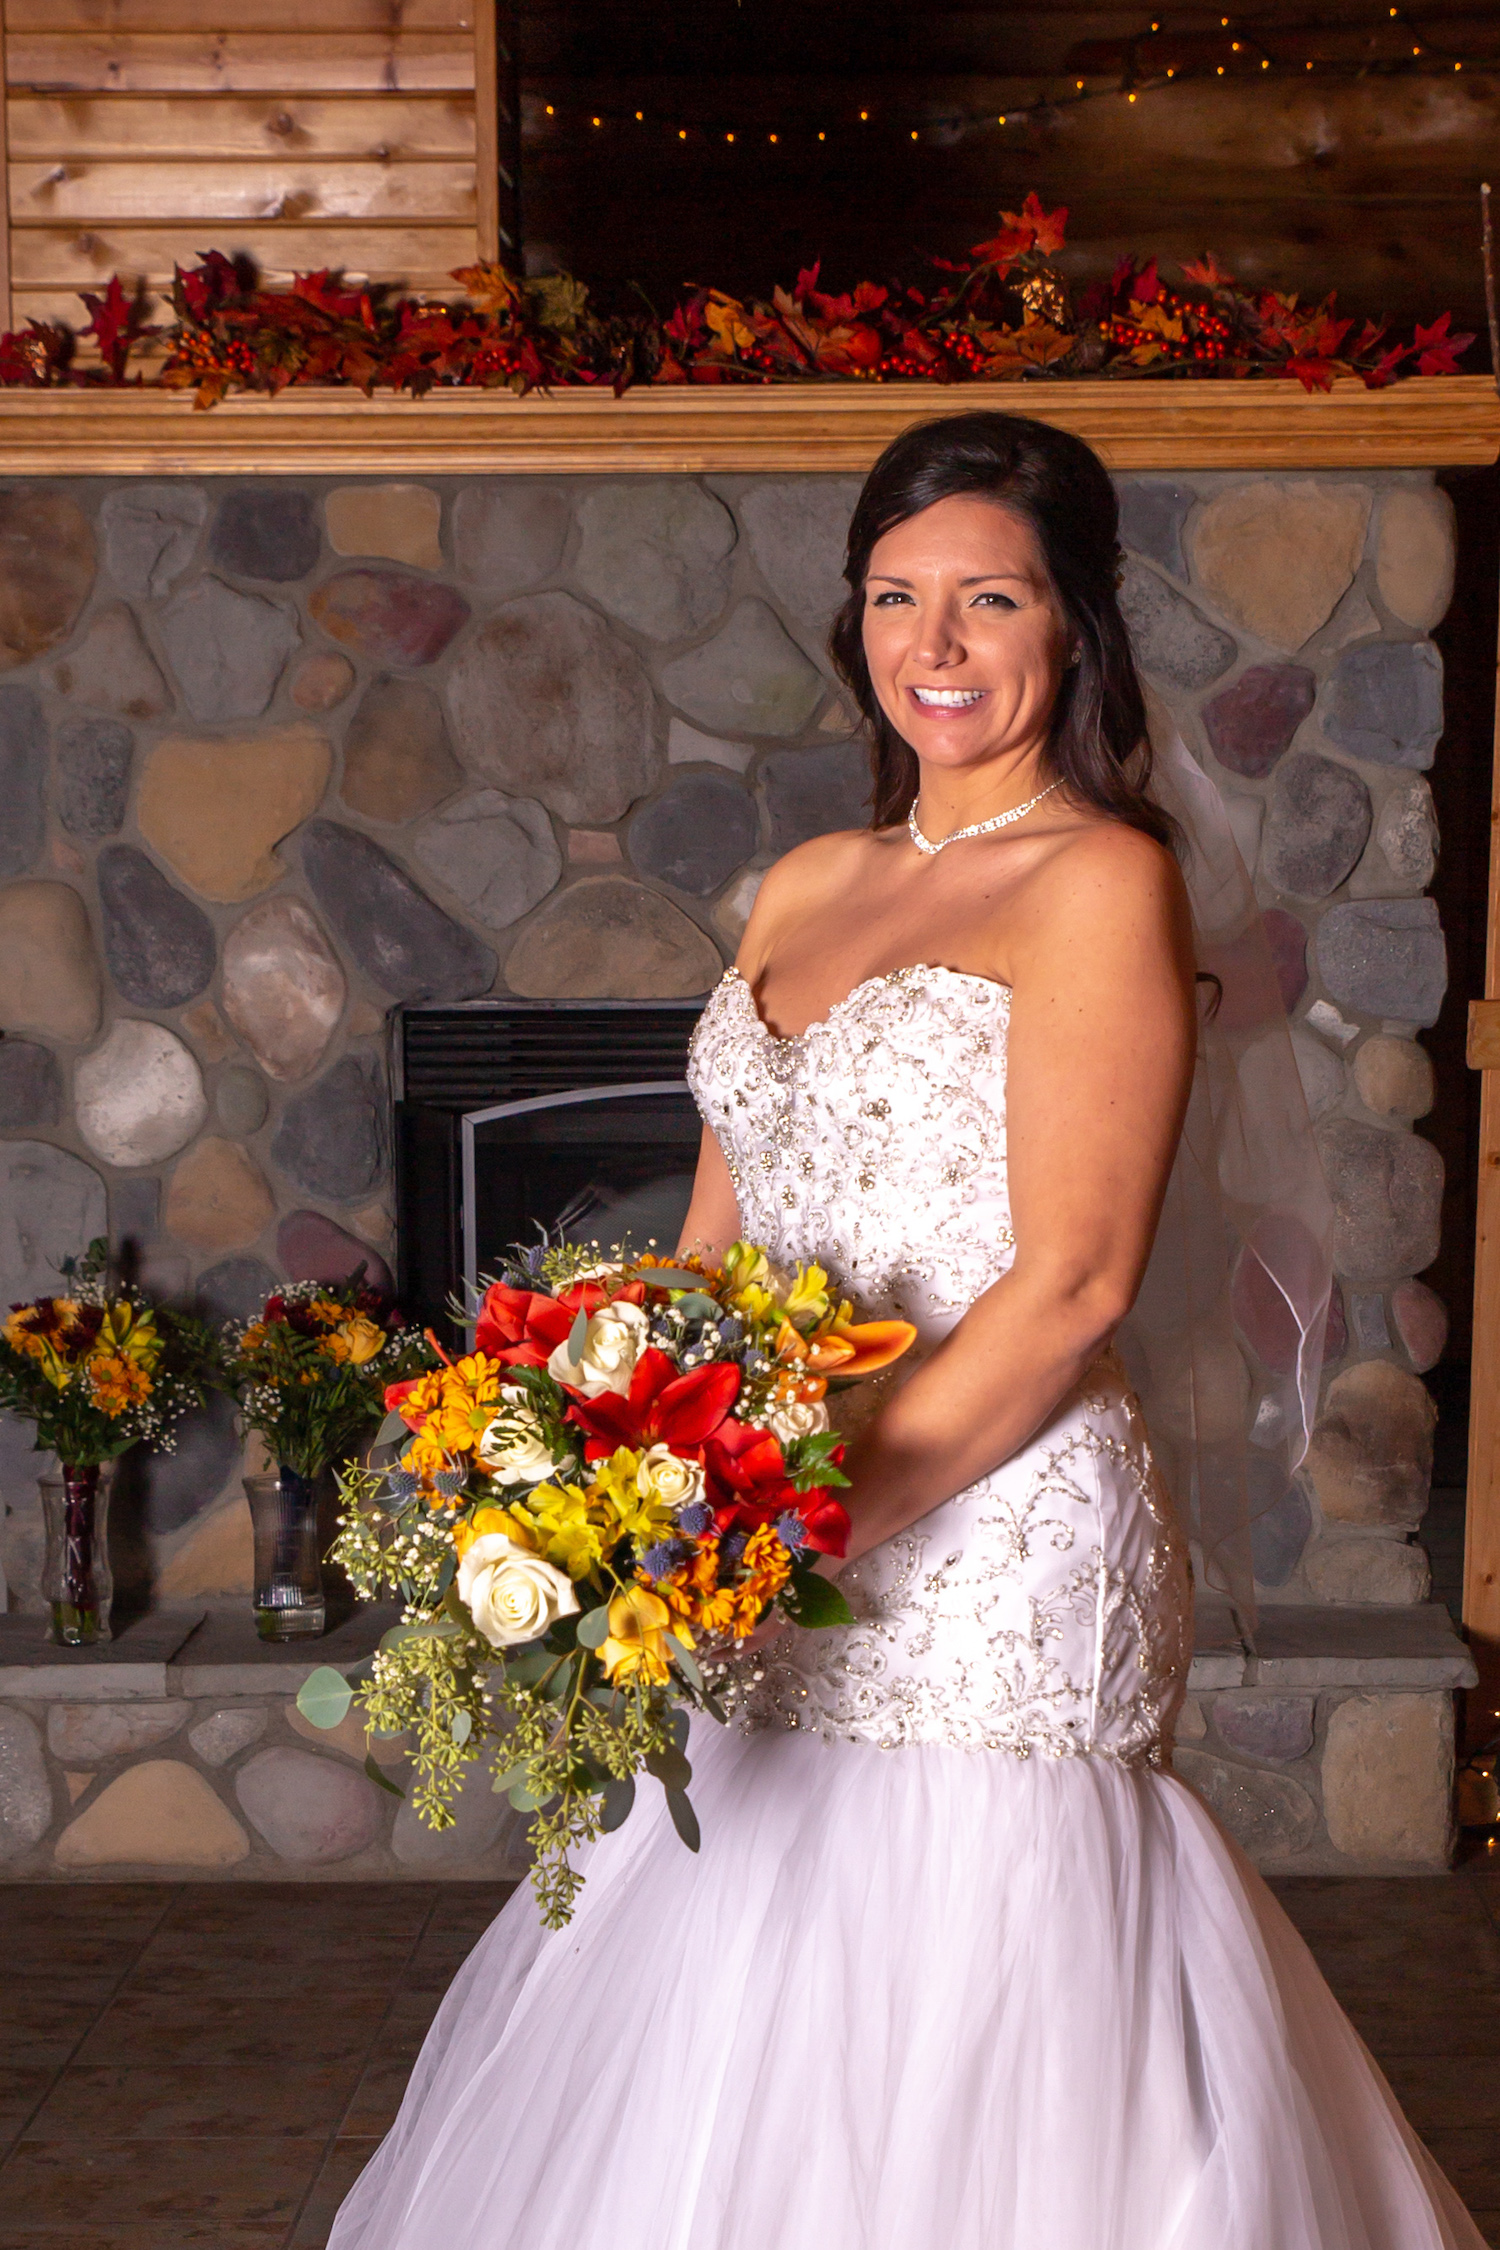 Glenhaven winter Minnesota wedding rustic barn, orange and yellow bouquet, in front of stone fire place